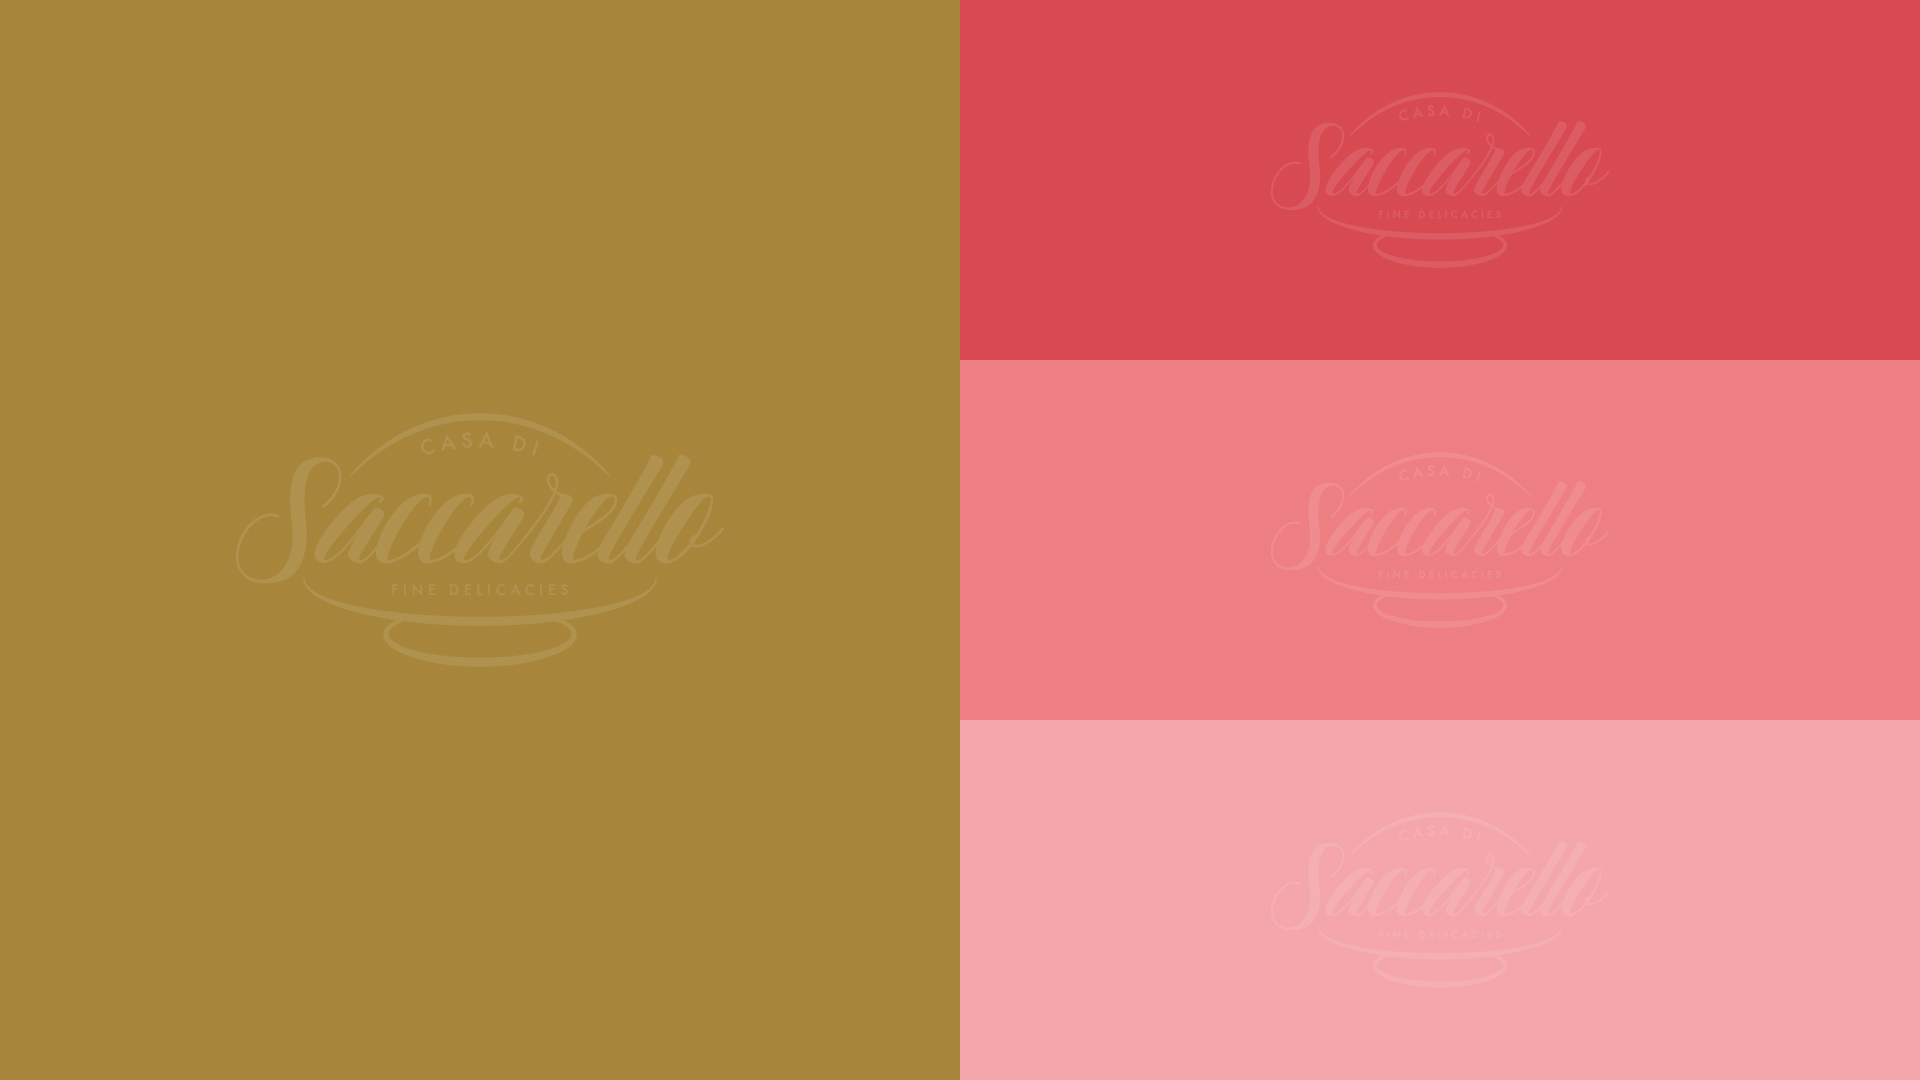 fitosophy-saccarello-brand-colors